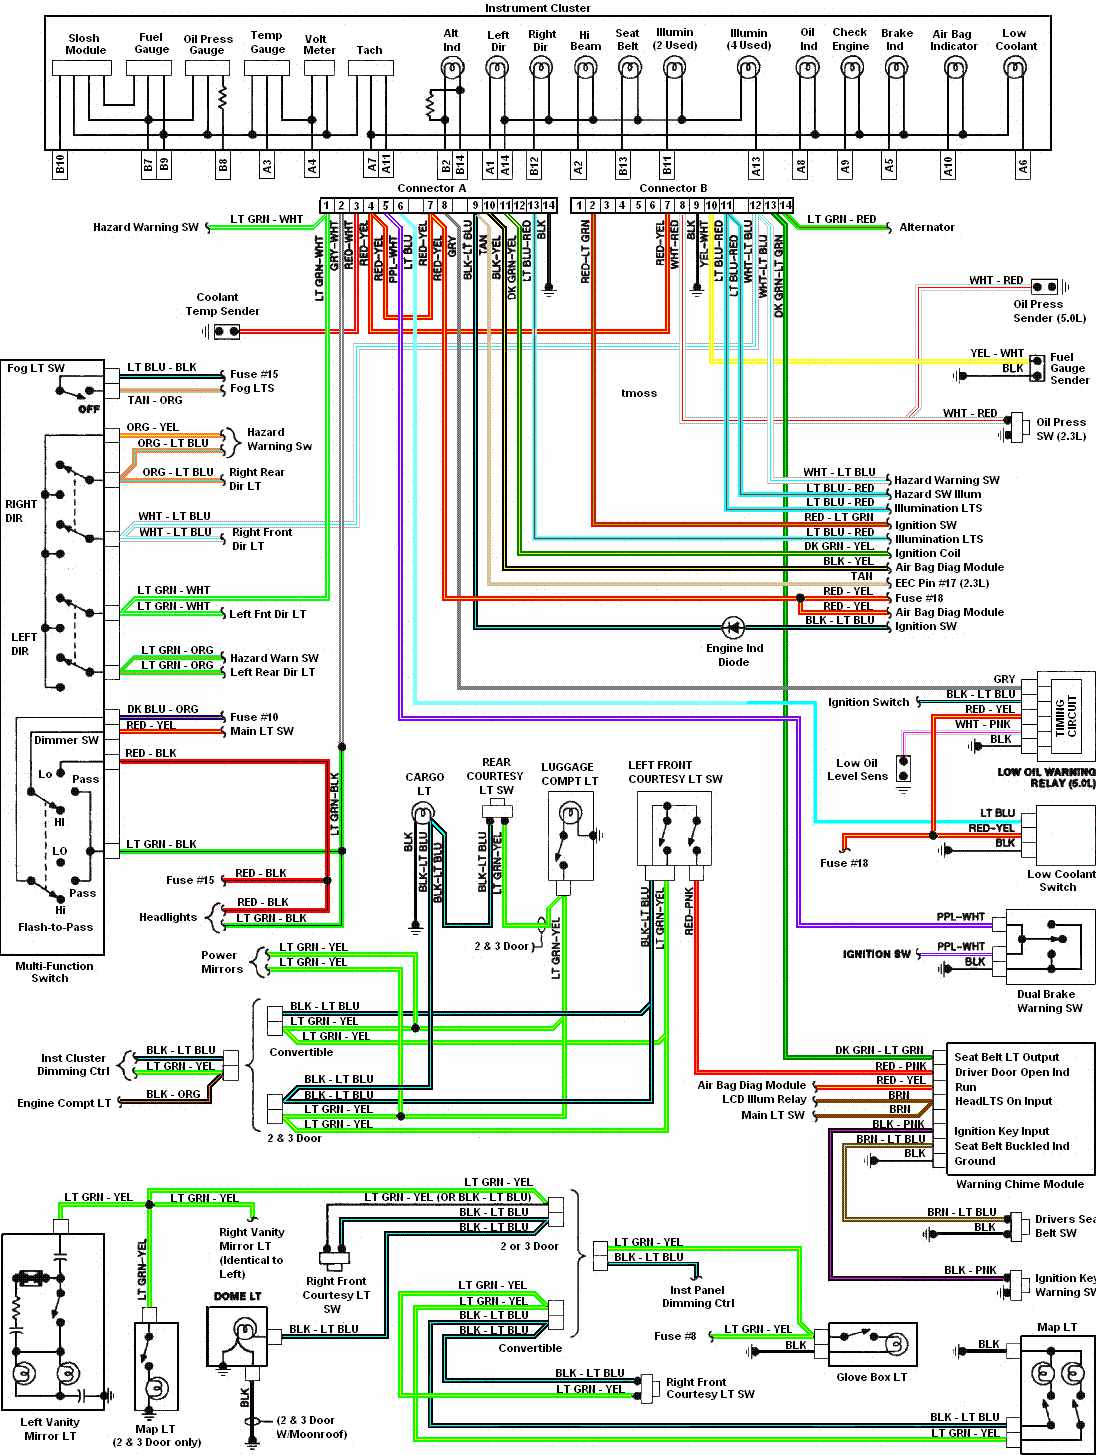 2012 F250 Wiring Schematic Wiring Diagram additionally Honda Cr V Airbag Module Location moreover Jogadoras De Volei together with 2012 Toyota Highlander Car Stereo Wiring Diagram likewise Chevy Captiva Engine Diagram. on toyota v6 parts diagram radio